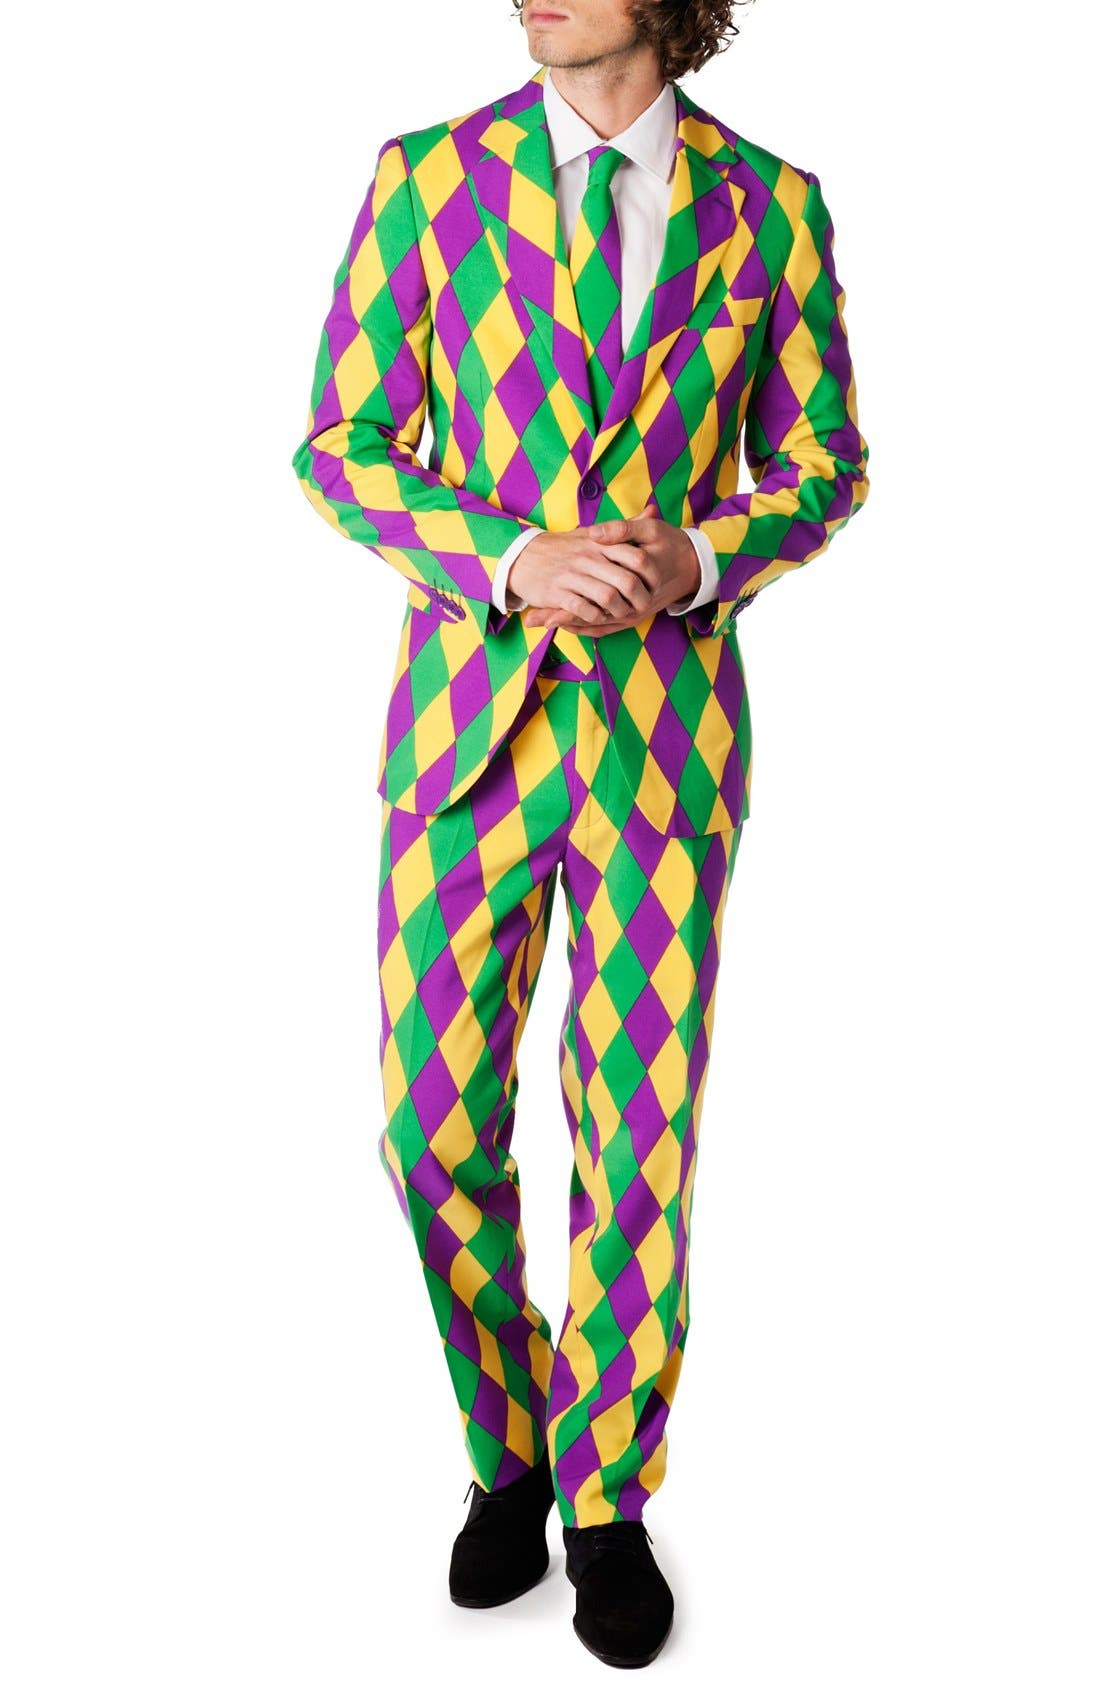 OppoSuits 'Harleking' Trim Fit Suit with Tie